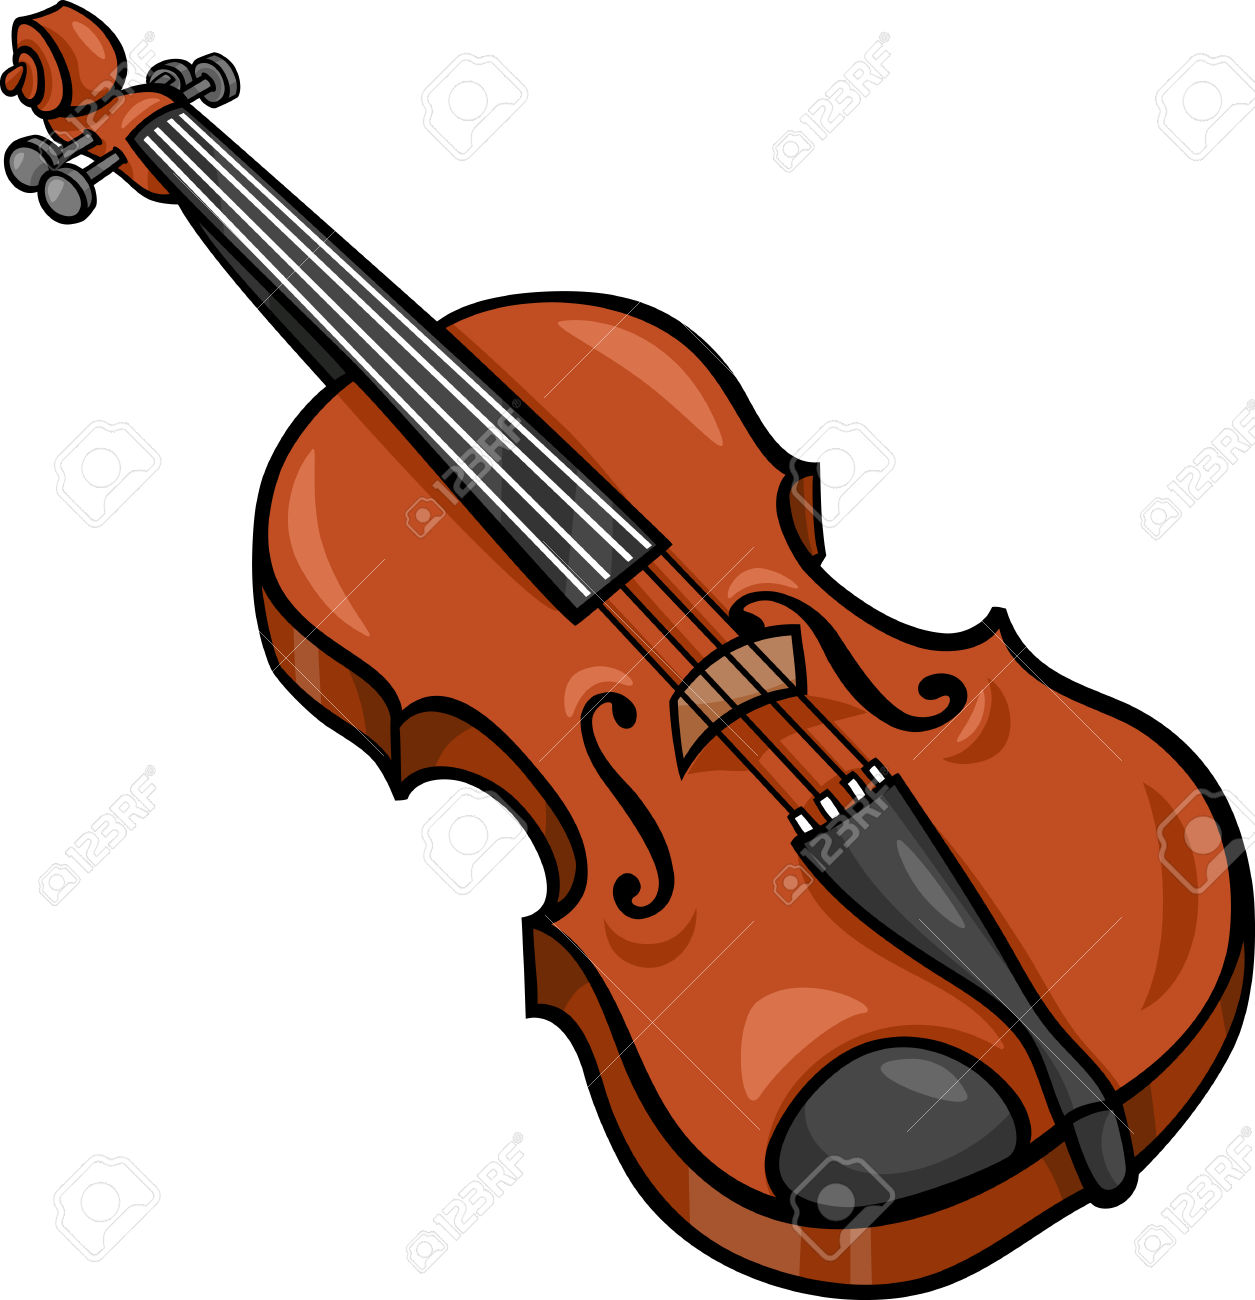 Violinist clipart school orchestra Violin Images Violin Clipart Clipart